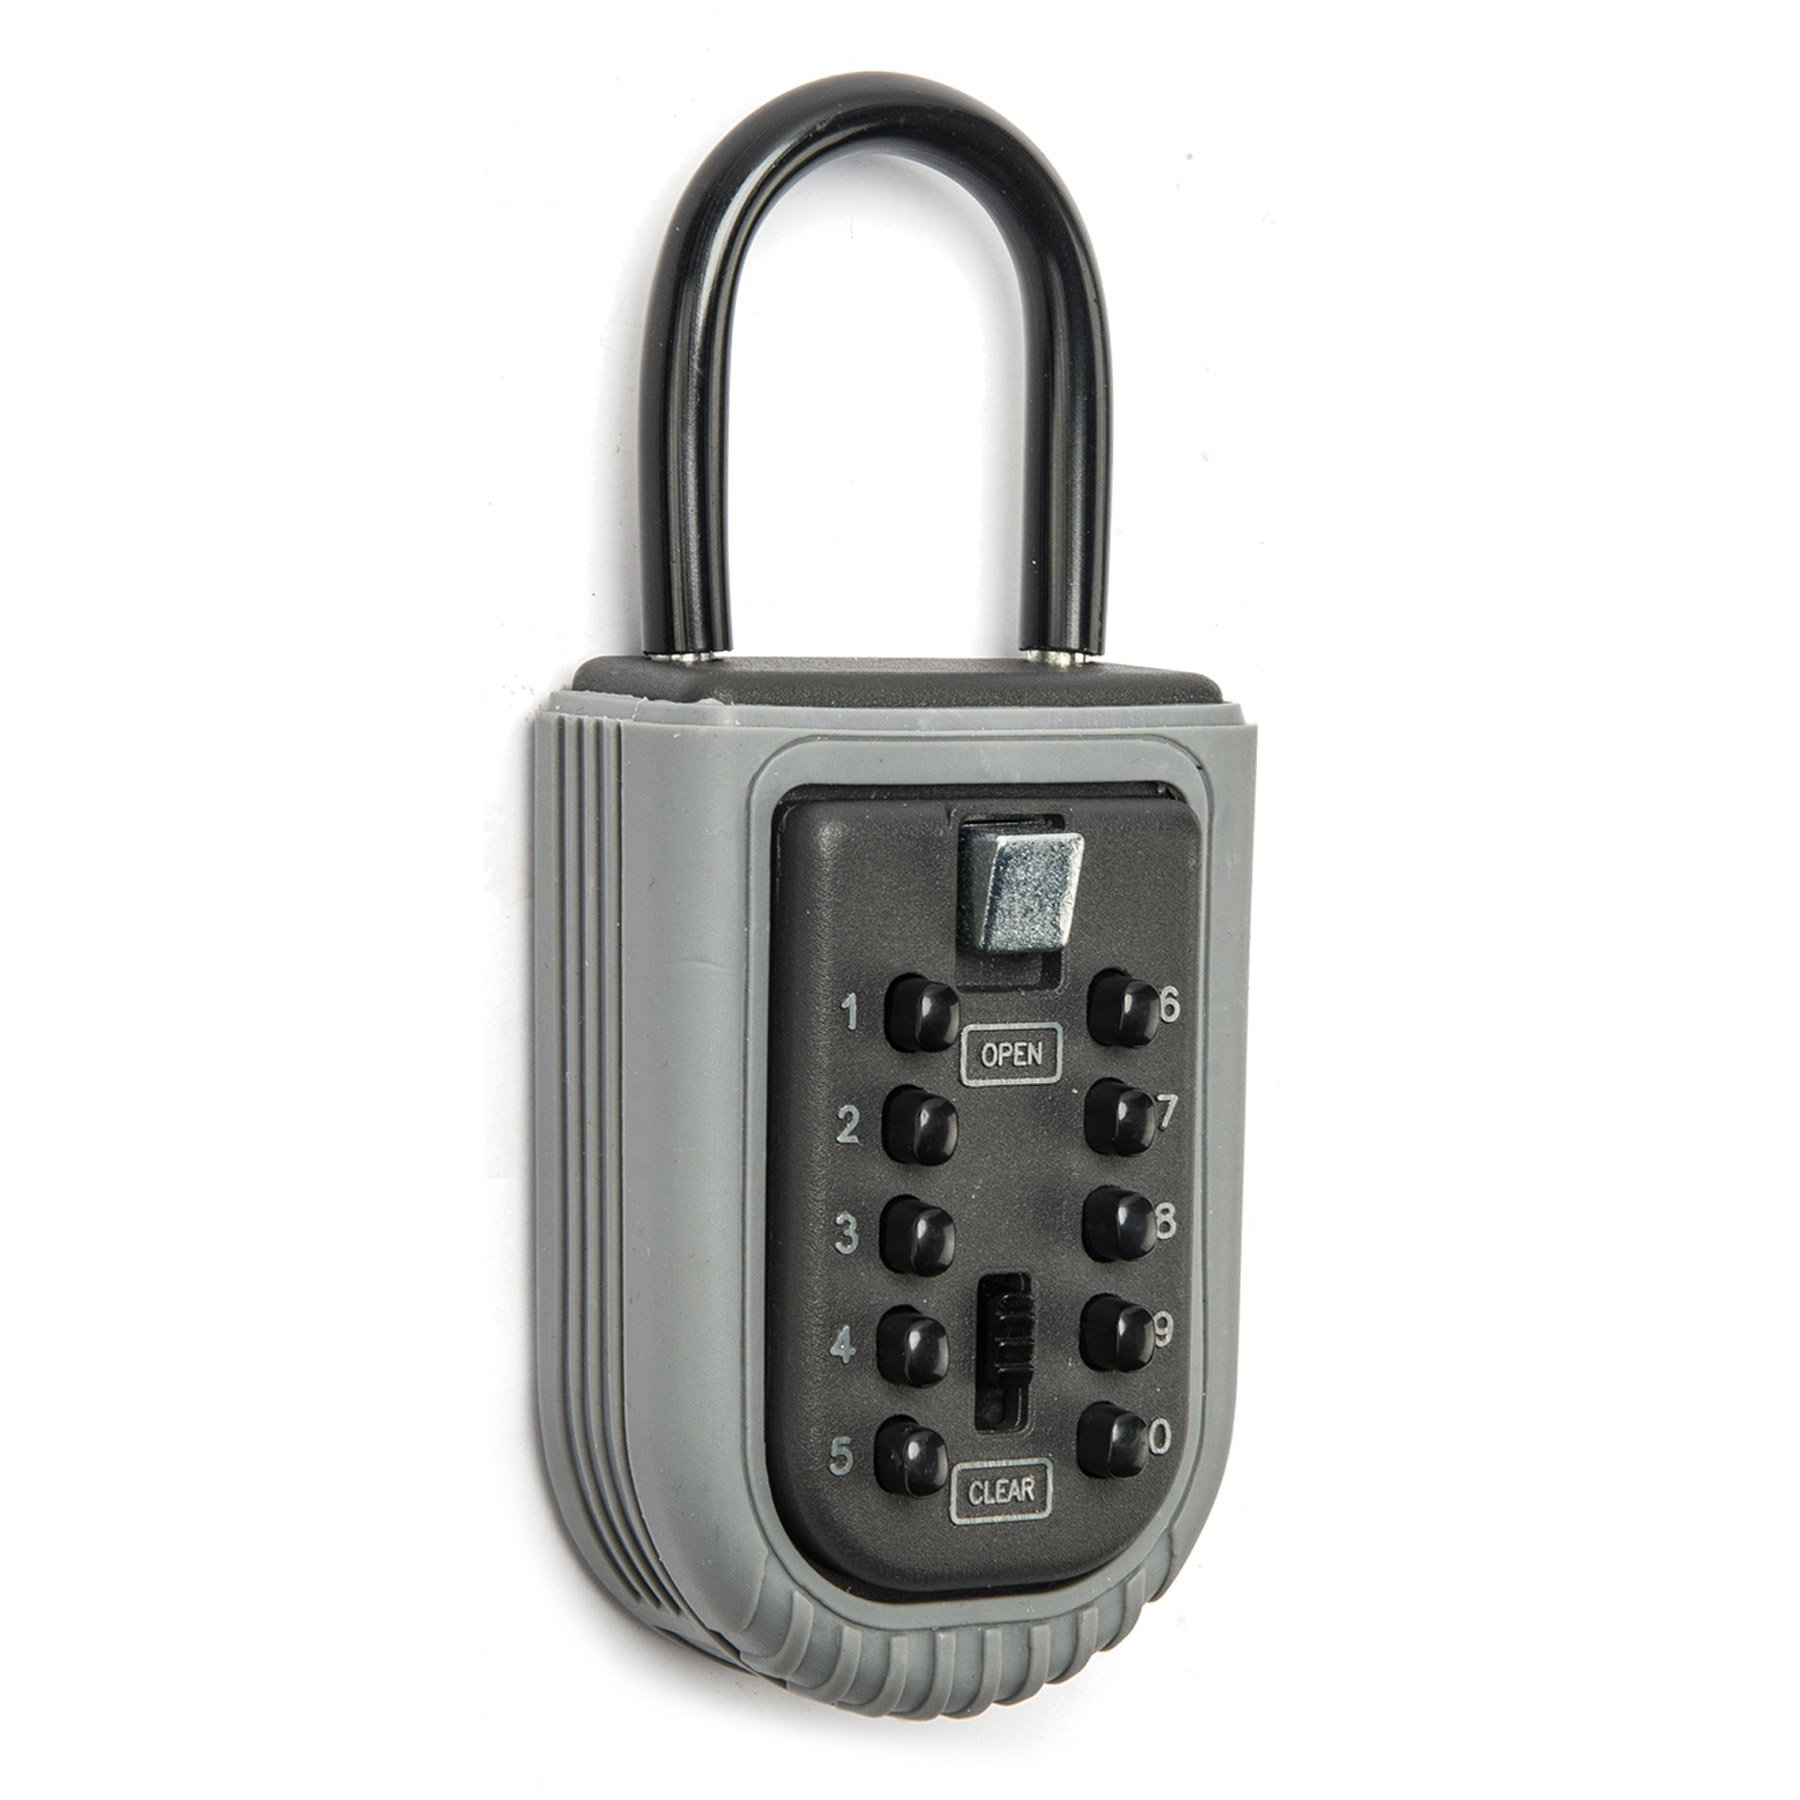 CO-Z Wall Mounted Key Lock Box Waterproof with 10-Digit Push Button Combination for Guests, Tenants, Realtors, Contractors, Spare Key Storage at Home or Office by CO-Z (Image #6)